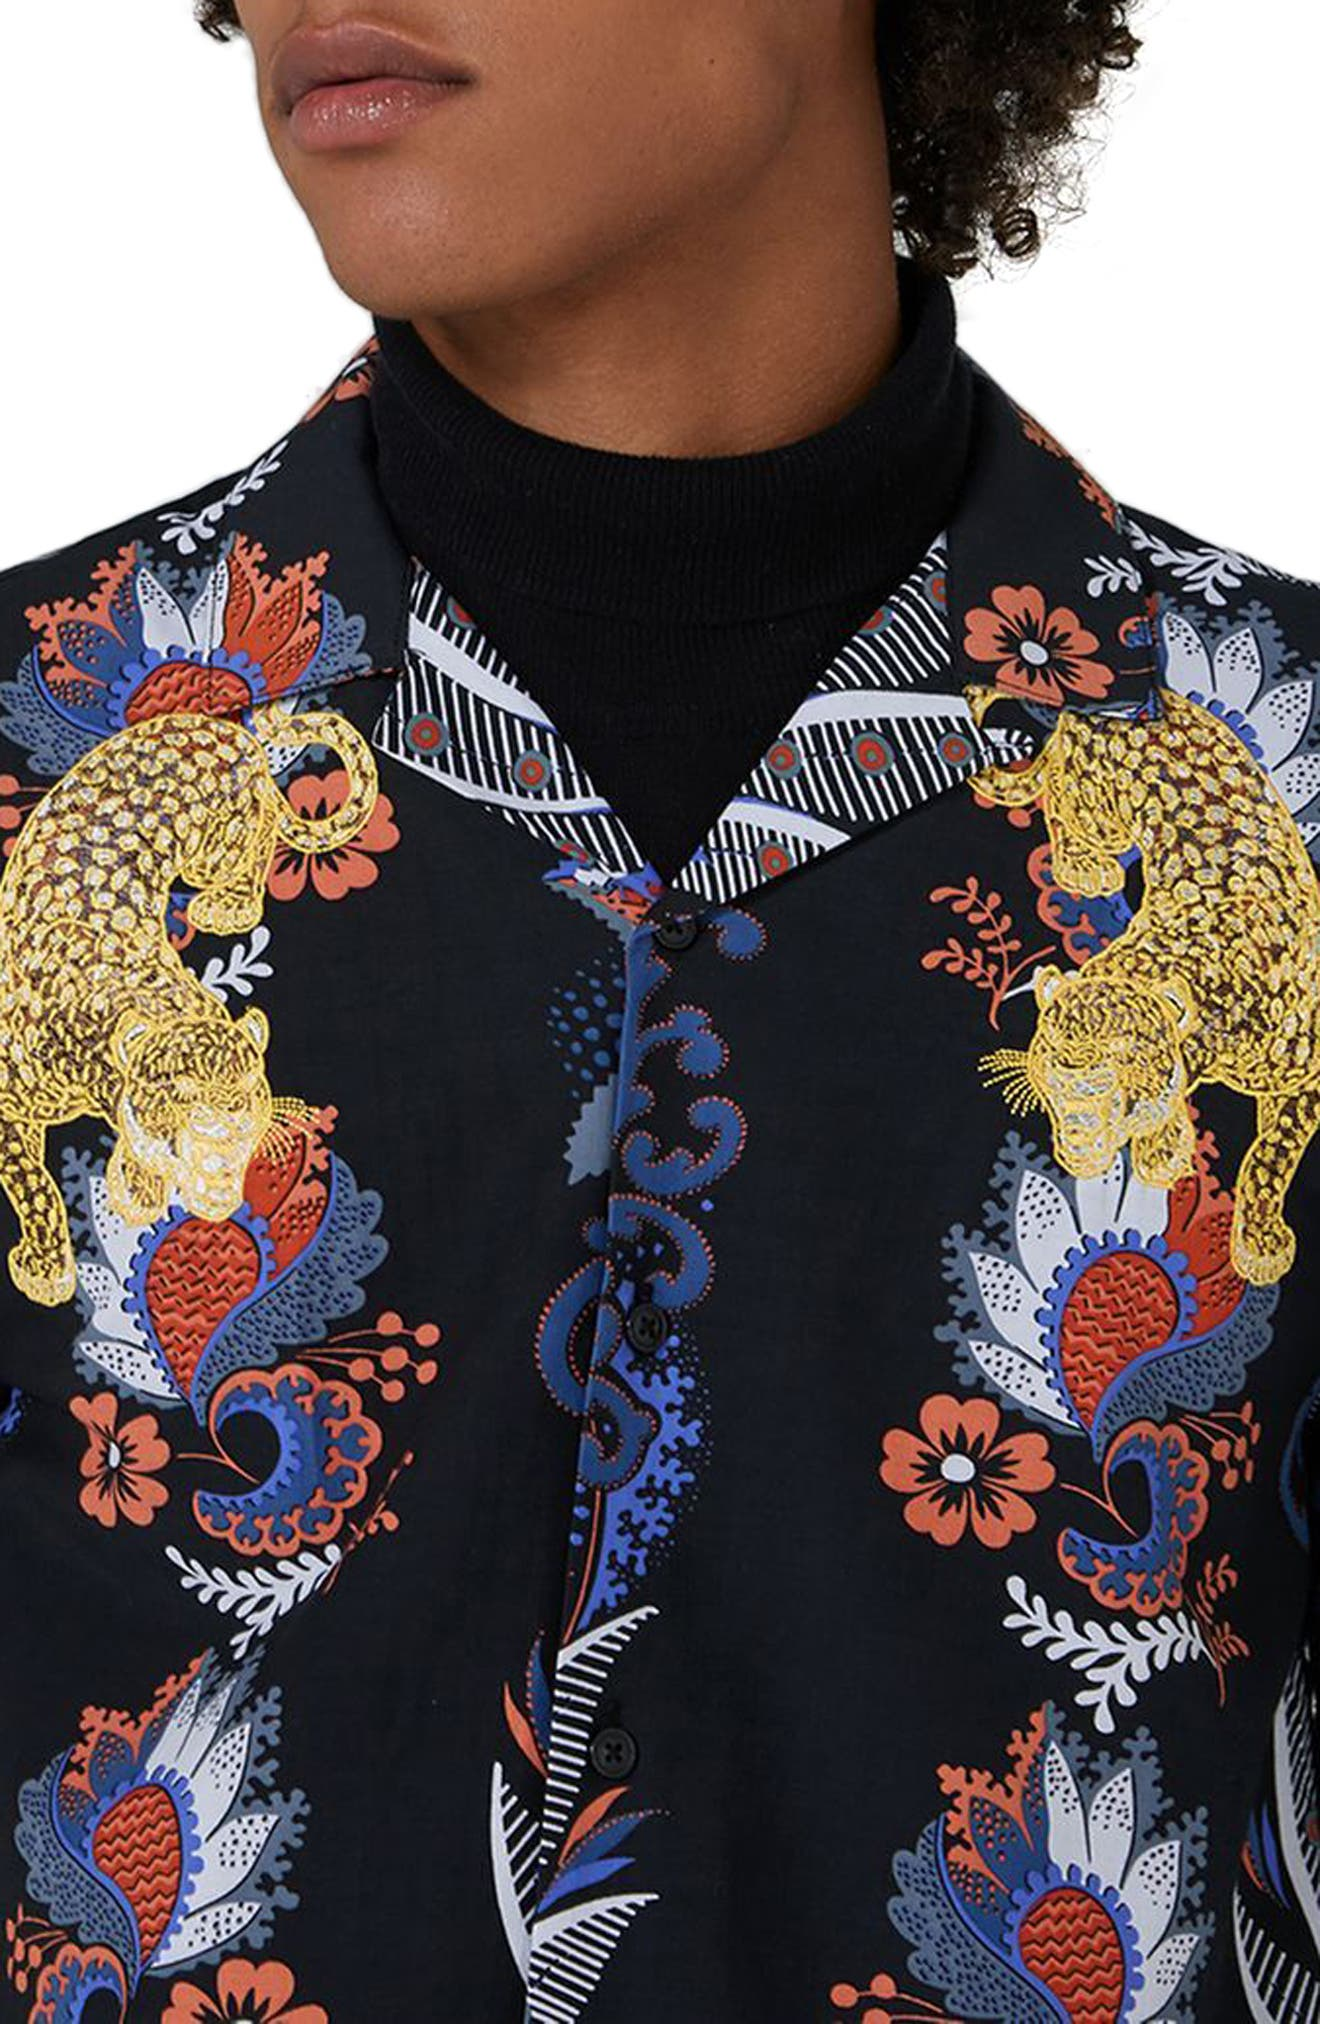 Embroidered Tiger Print Revere Collar Shirt,                             Alternate thumbnail 3, color,                             001